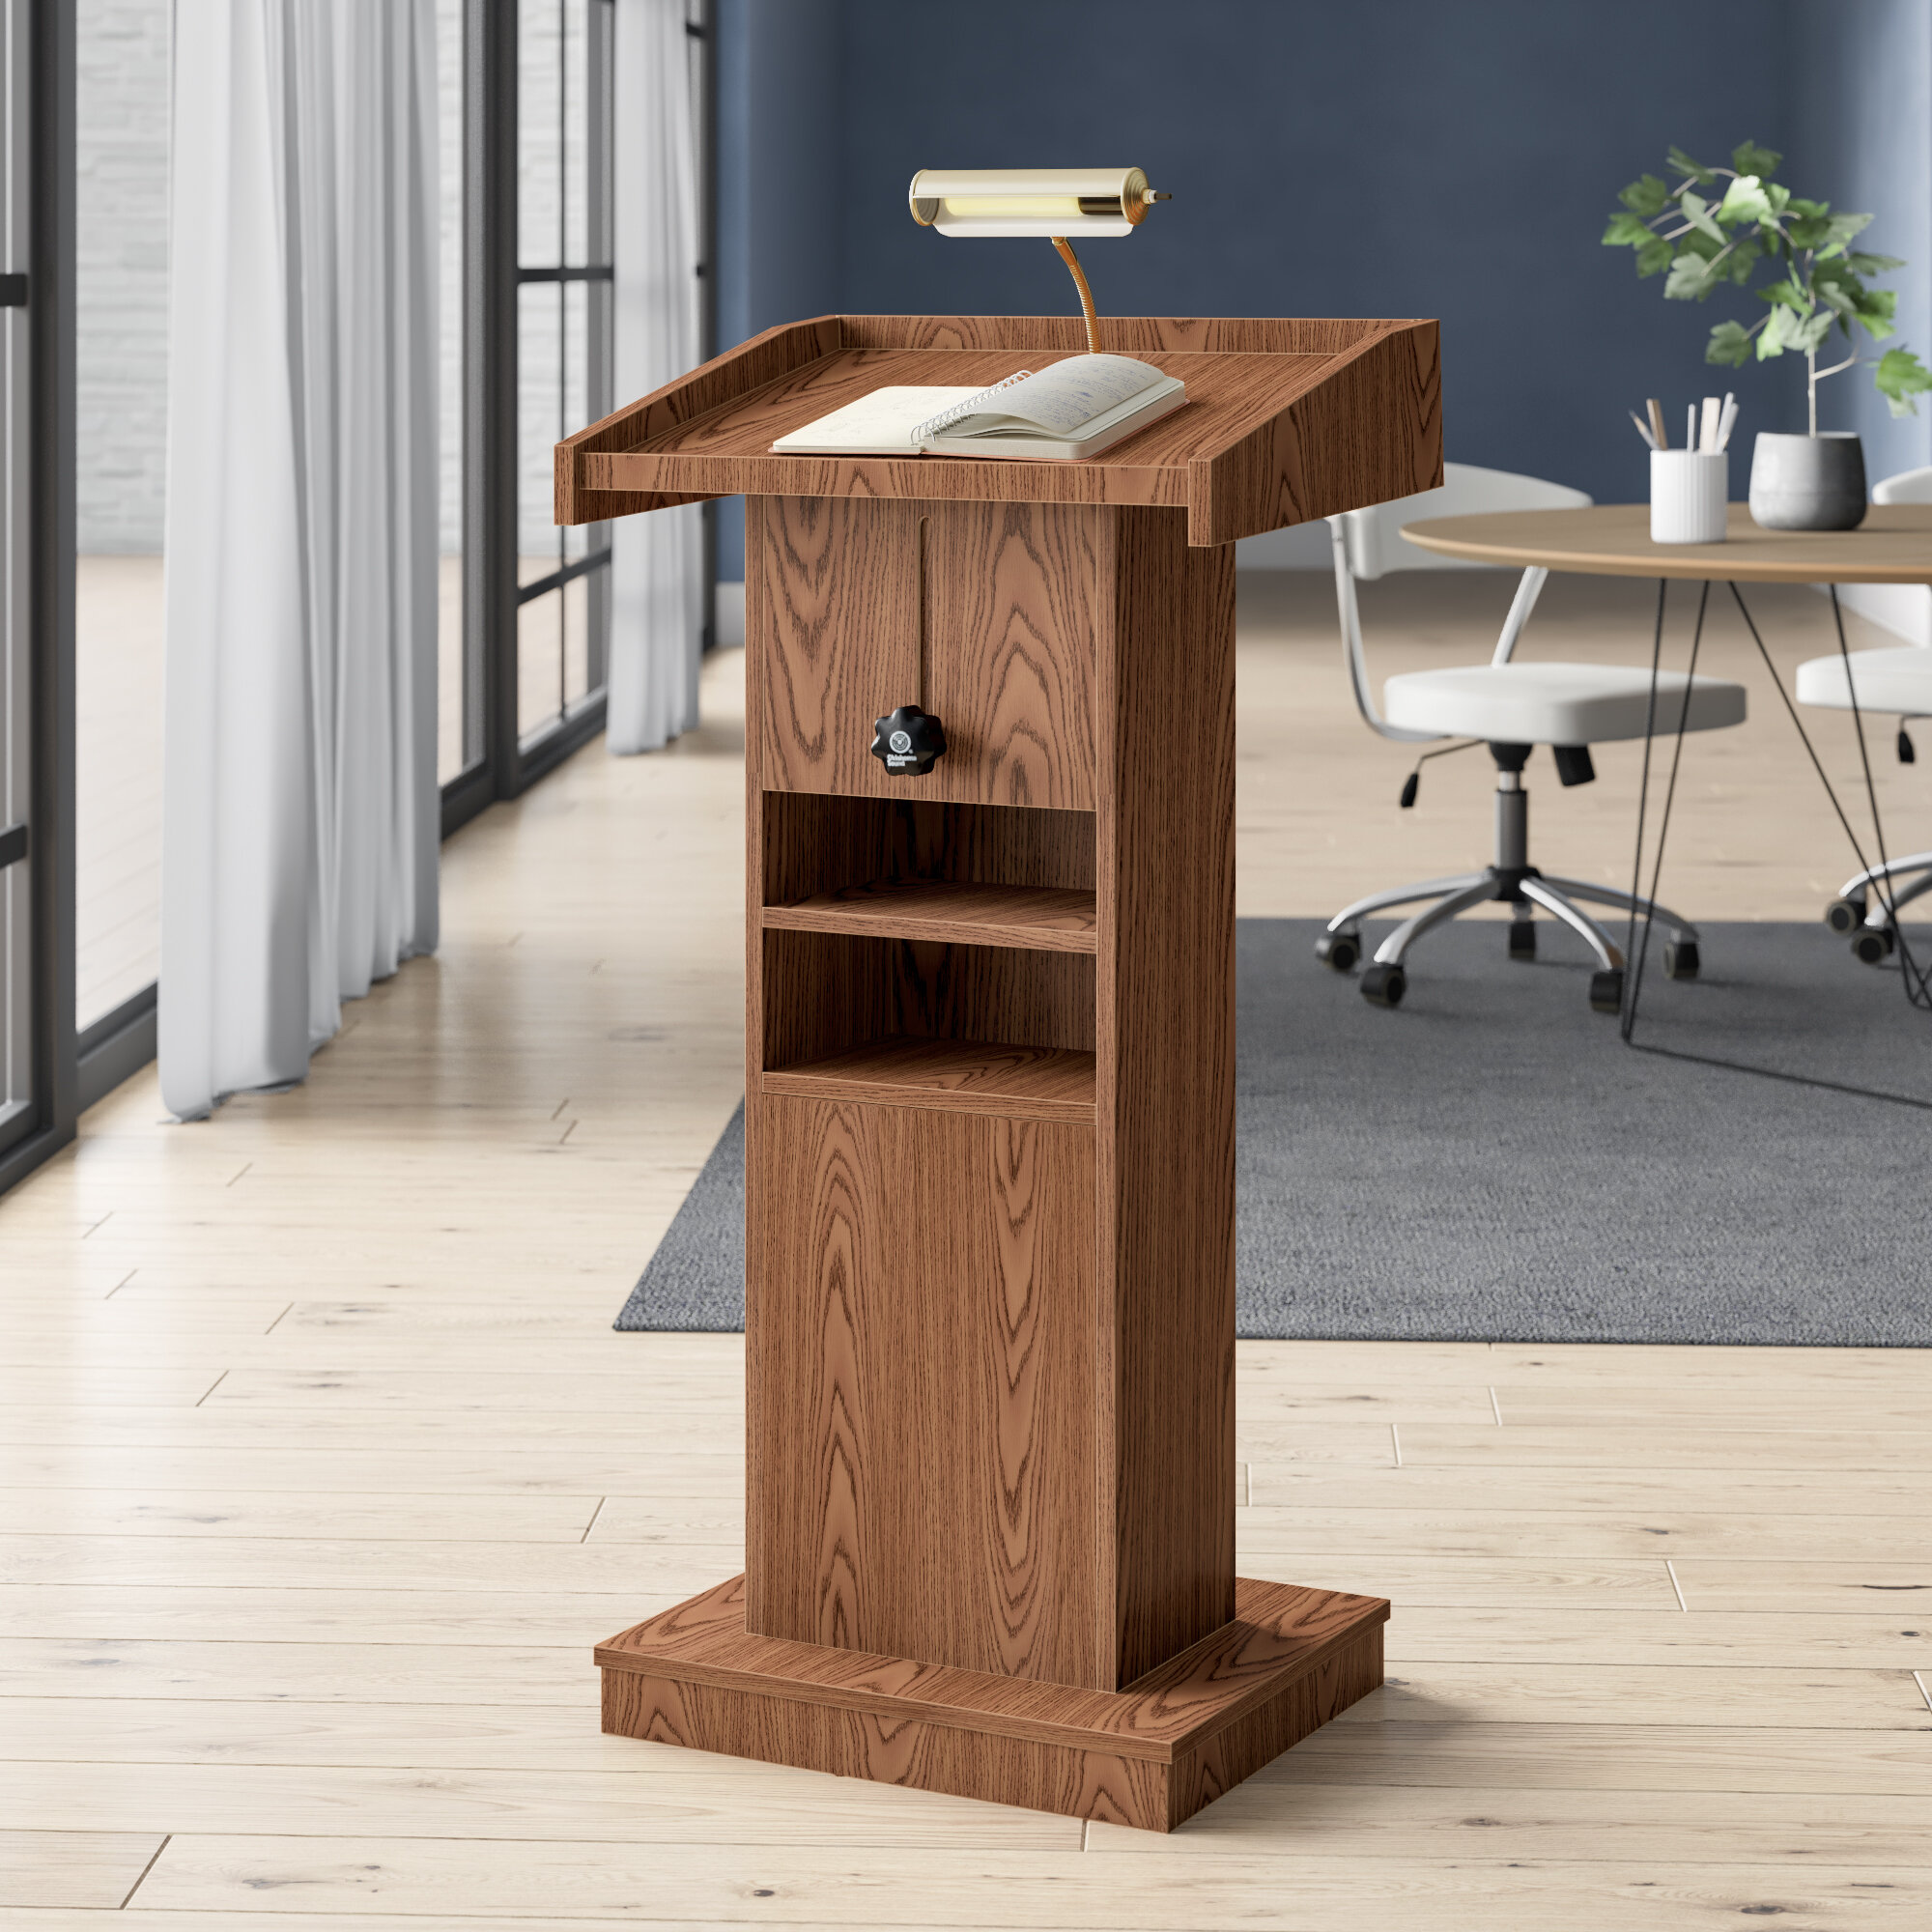 Oklahoma Sound Orator Height Adjusting Full Podium Wayfair